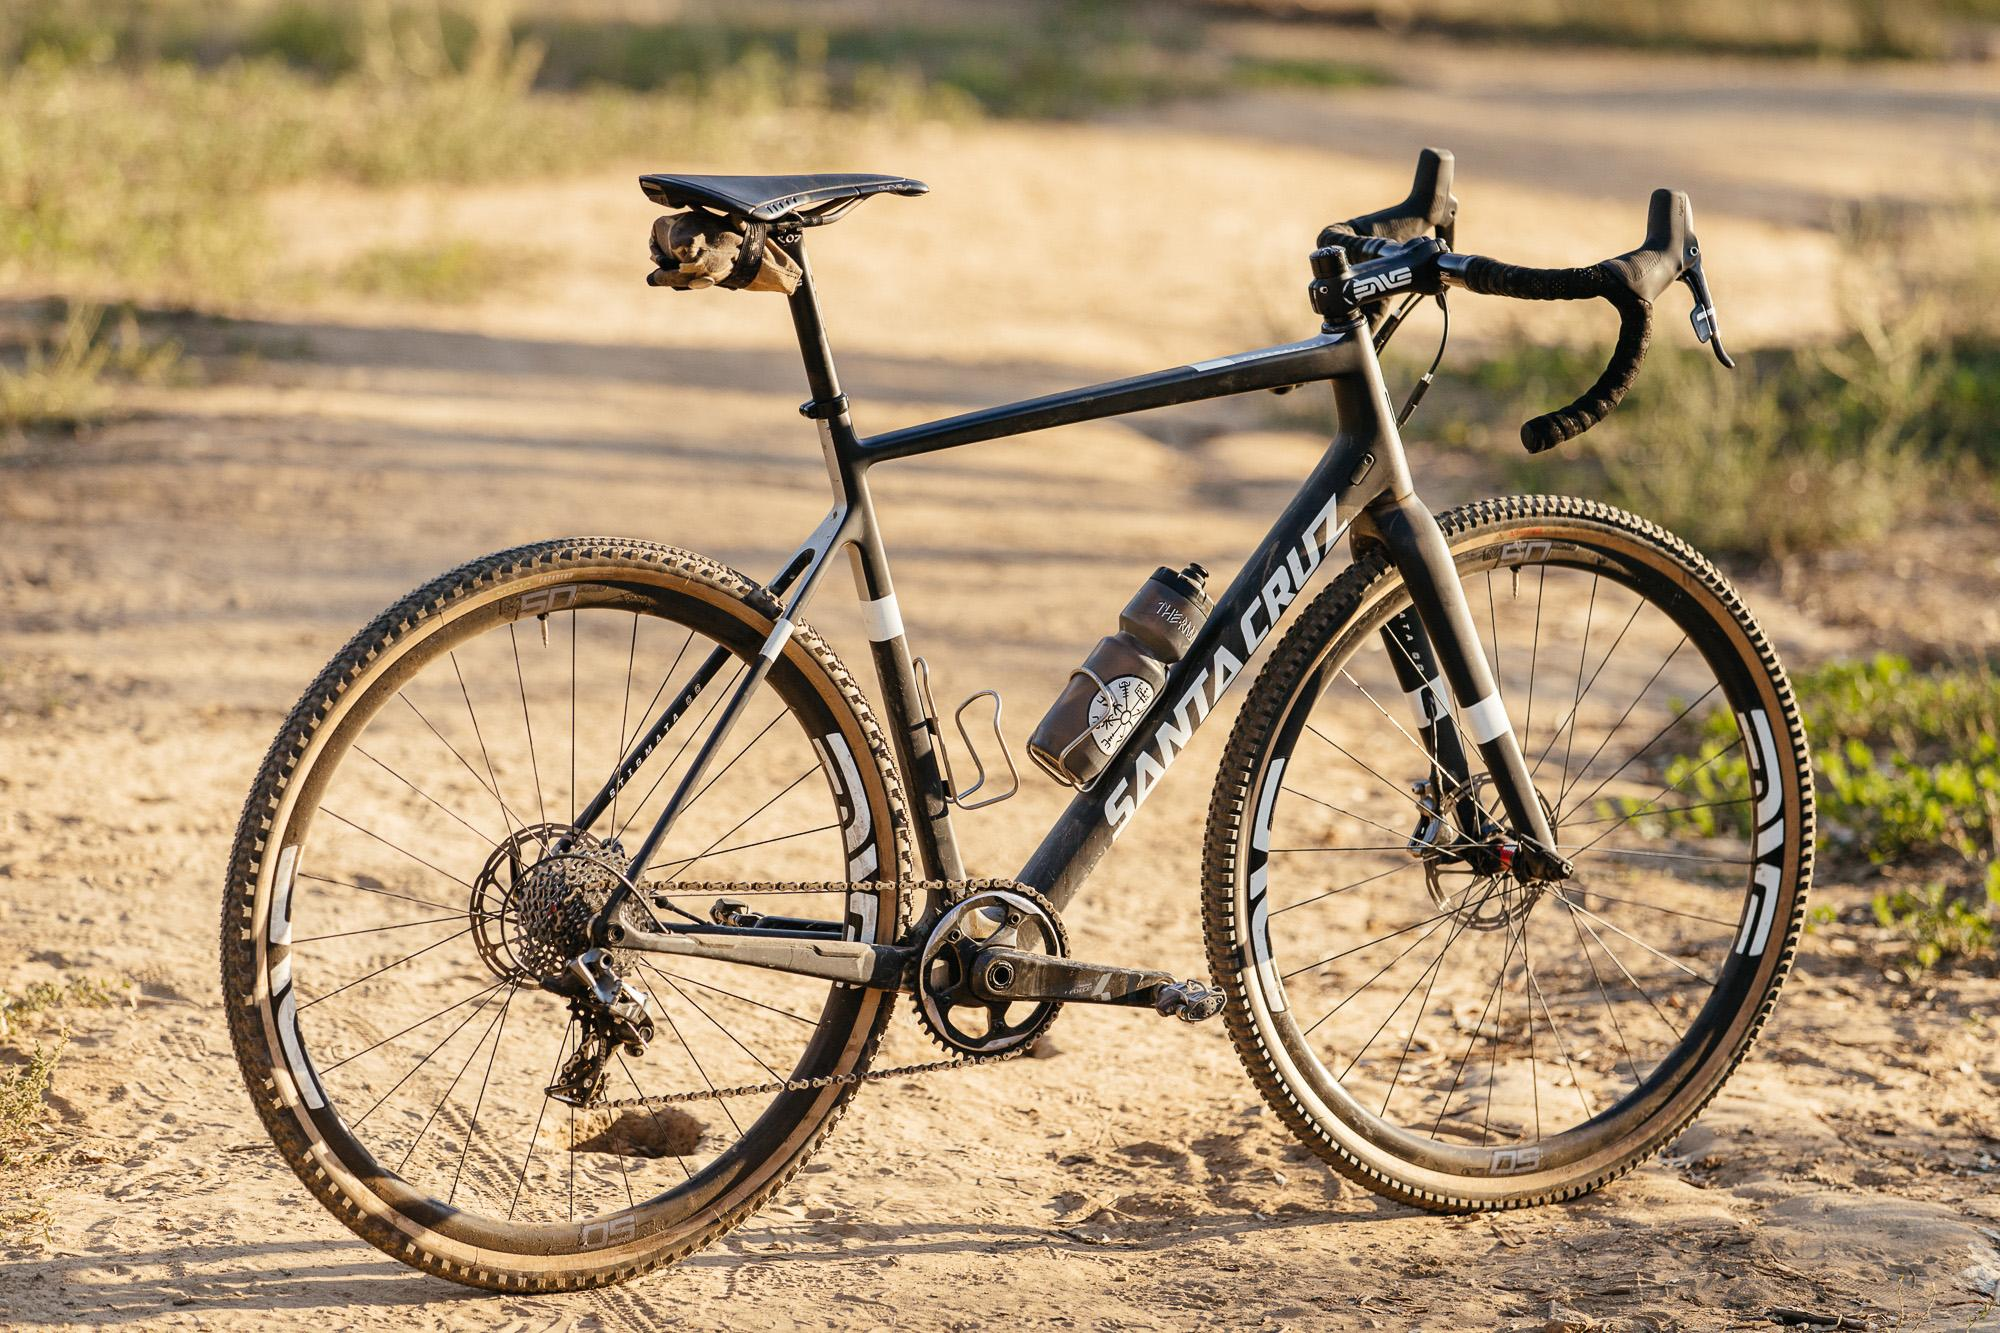 Seven Months of Shredding on the Santa Cruz Stigmata